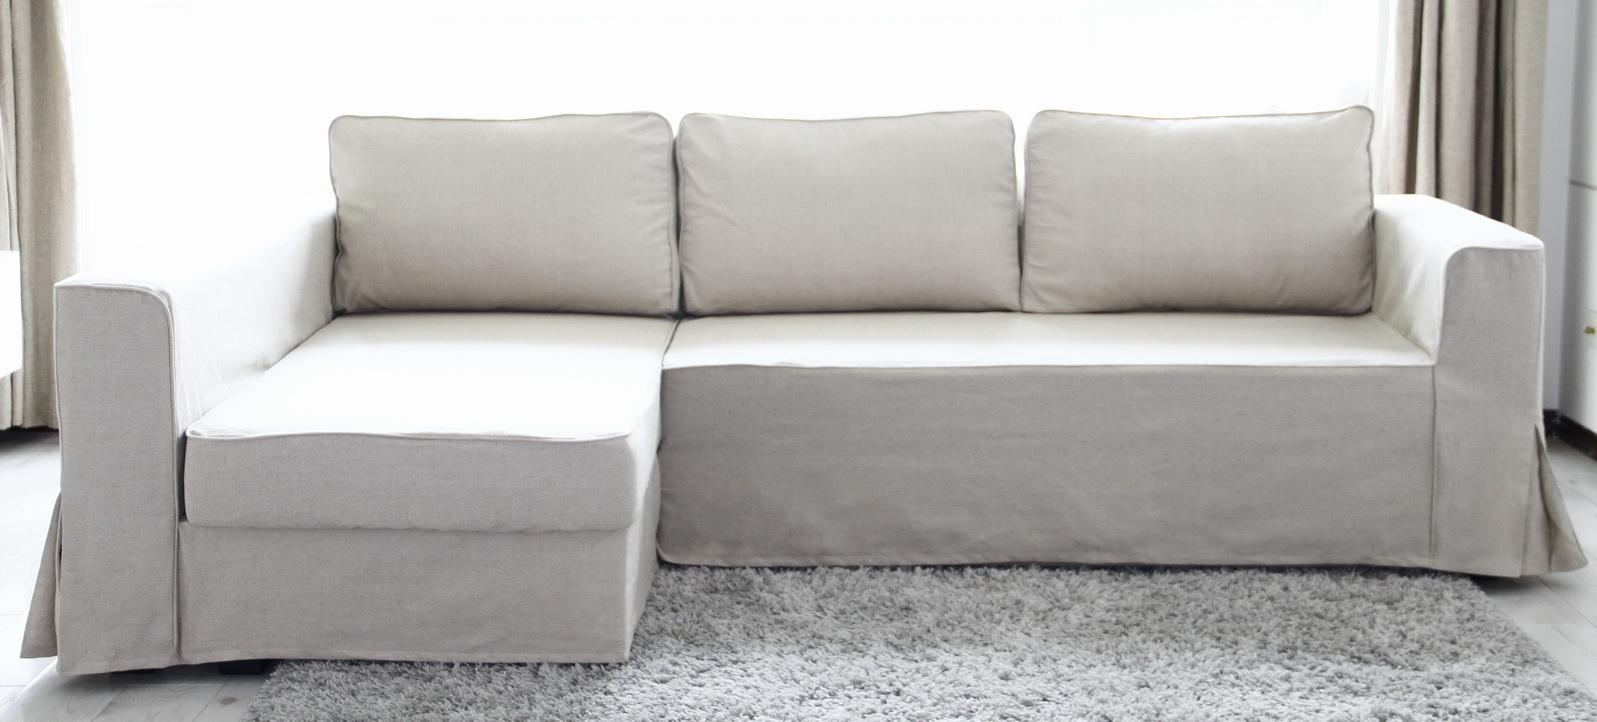 About The Ikea Sleeper Sofa – S3Net – Sectional Sofas Sale : S3Net Throughout Sleeper Sofa Sectional Ikea (Image 3 of 20)